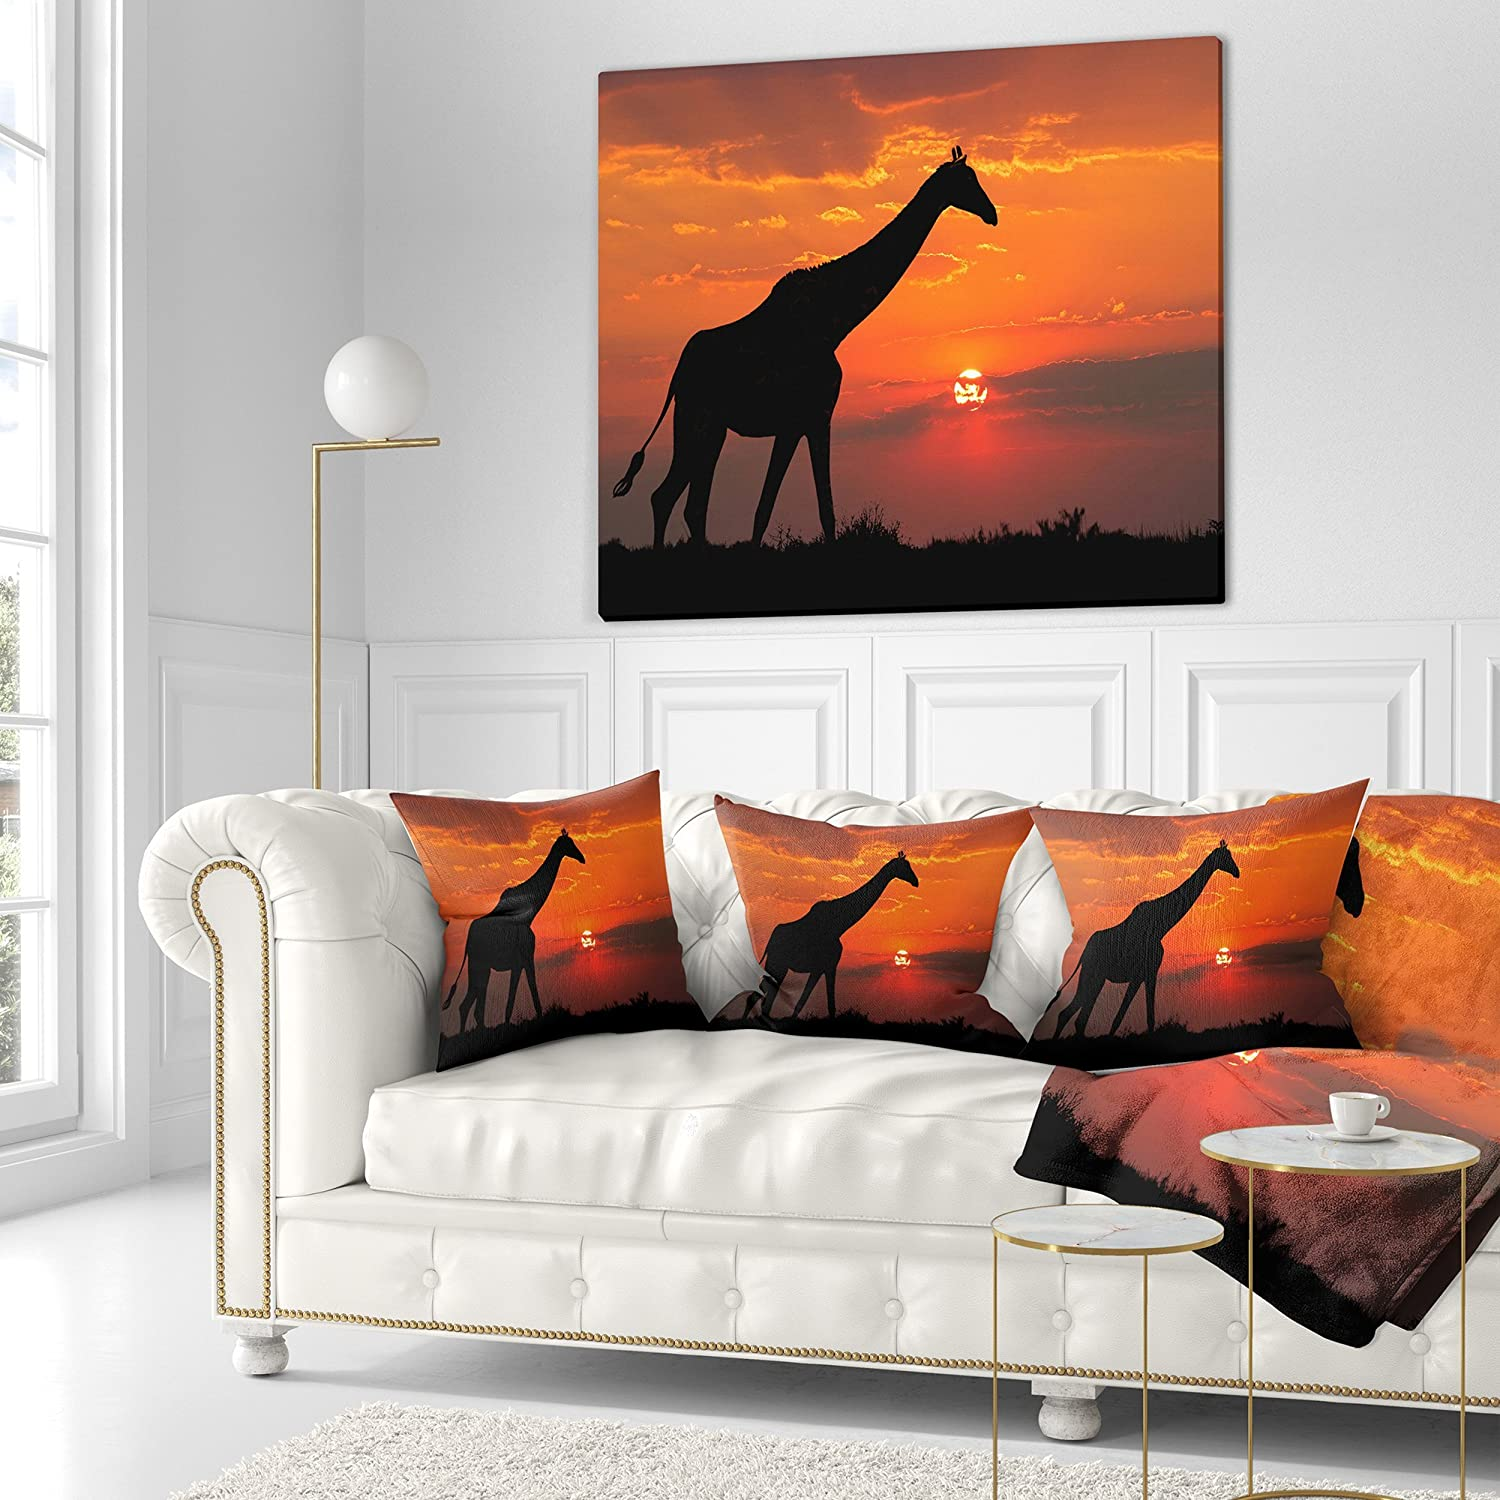 in Sofa Throw Pillow 18 in x 18 in Designart CU12938-18-18 Giraffe Silhouette at Sunset African Cushion Cover for Living Room